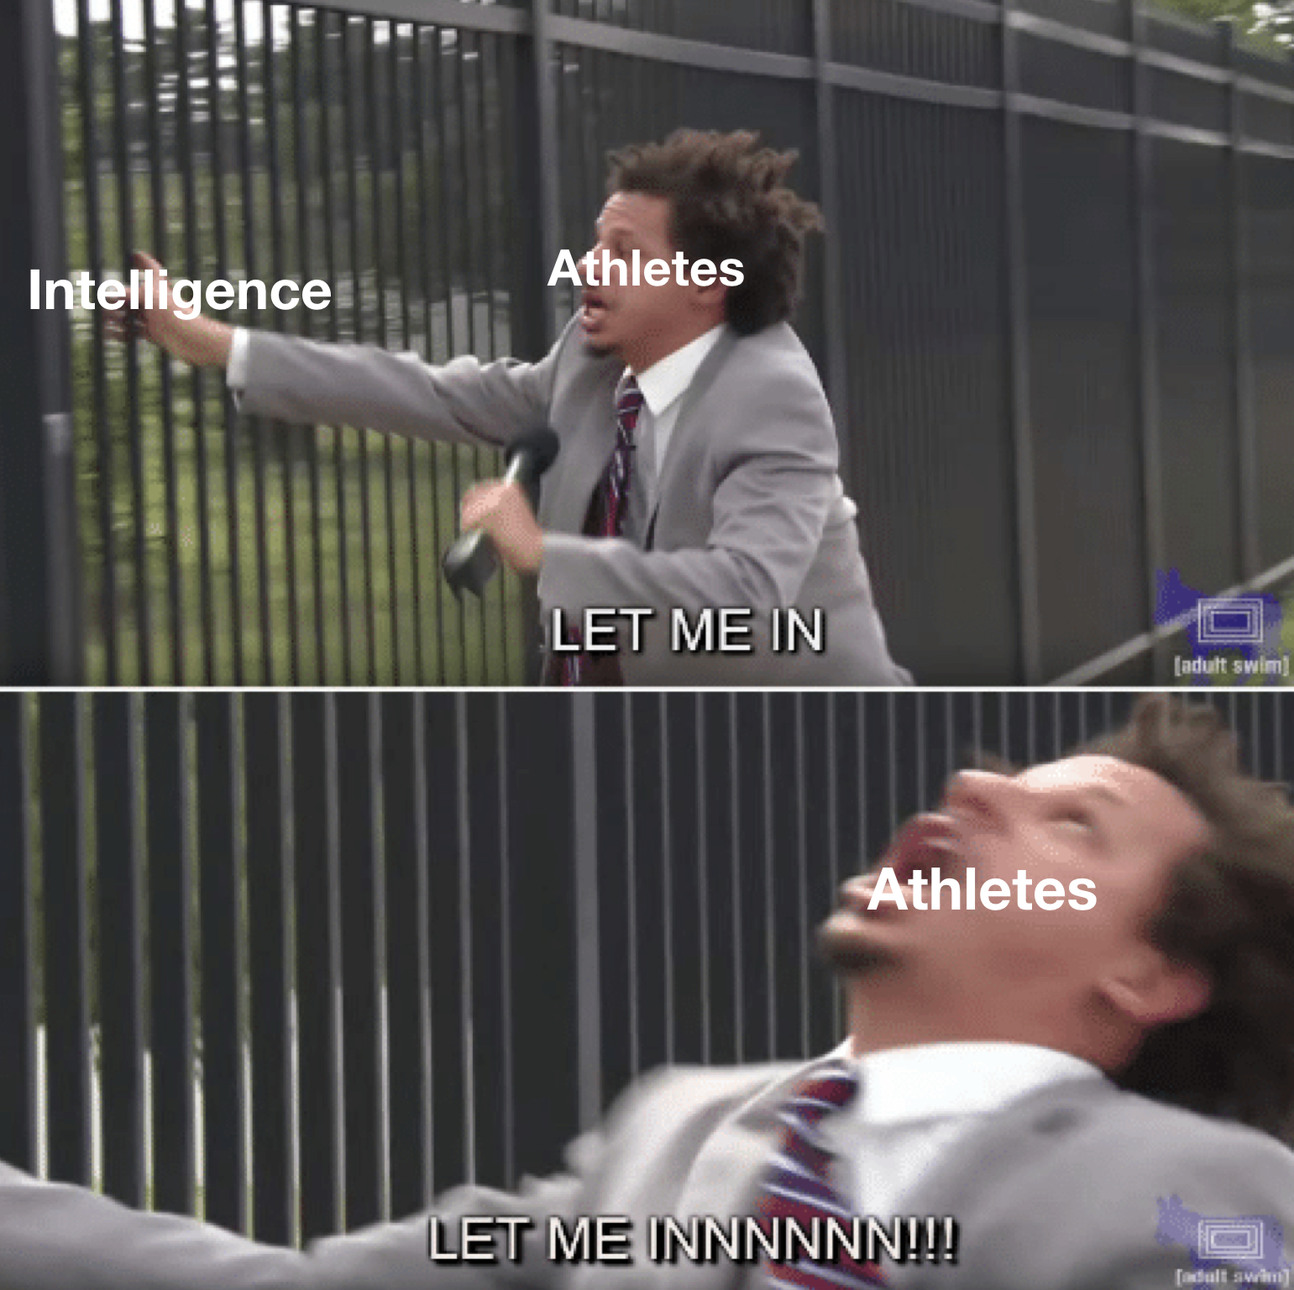 Athletes - meme